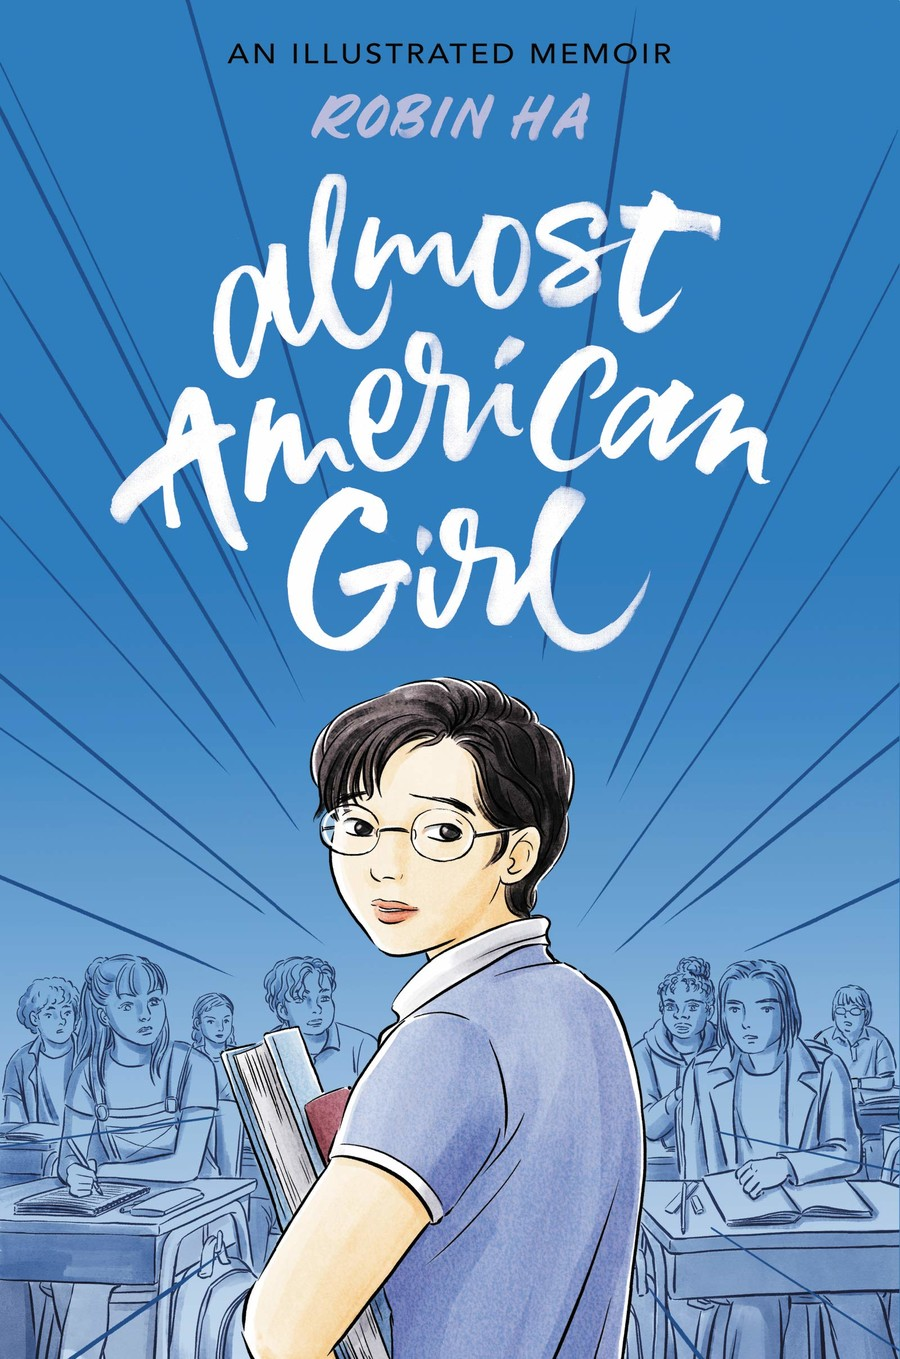 A young Korean girl with short hair, glasses, and a backpack faces out from a book cover.